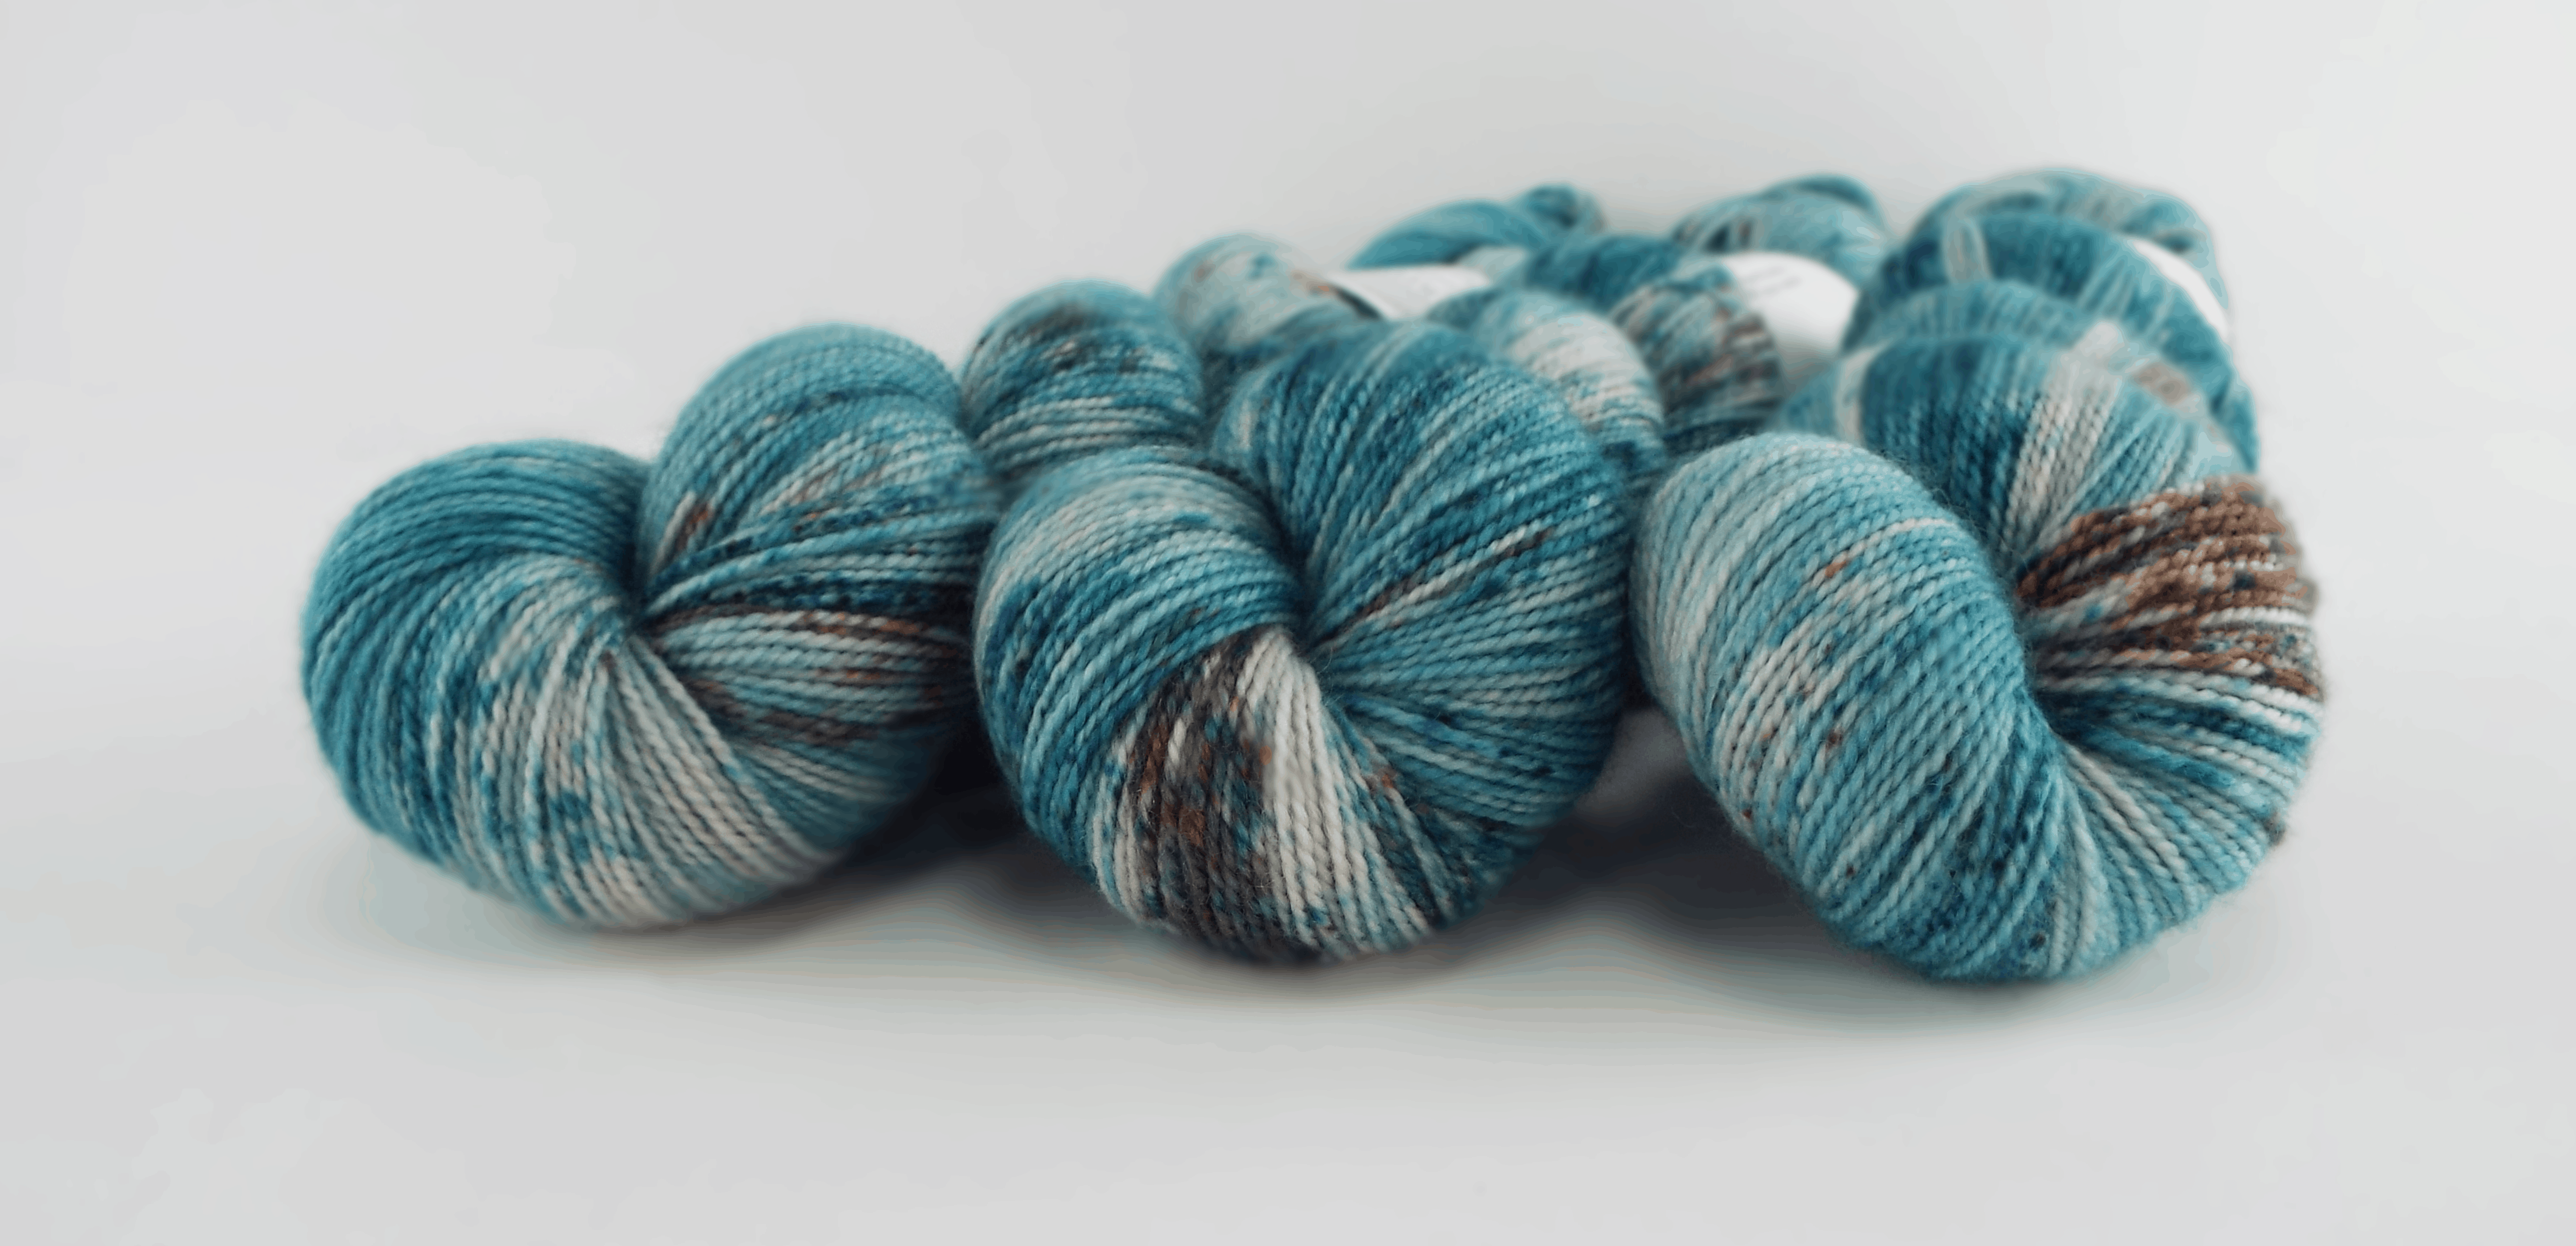 Blue yarn with gray speckles.